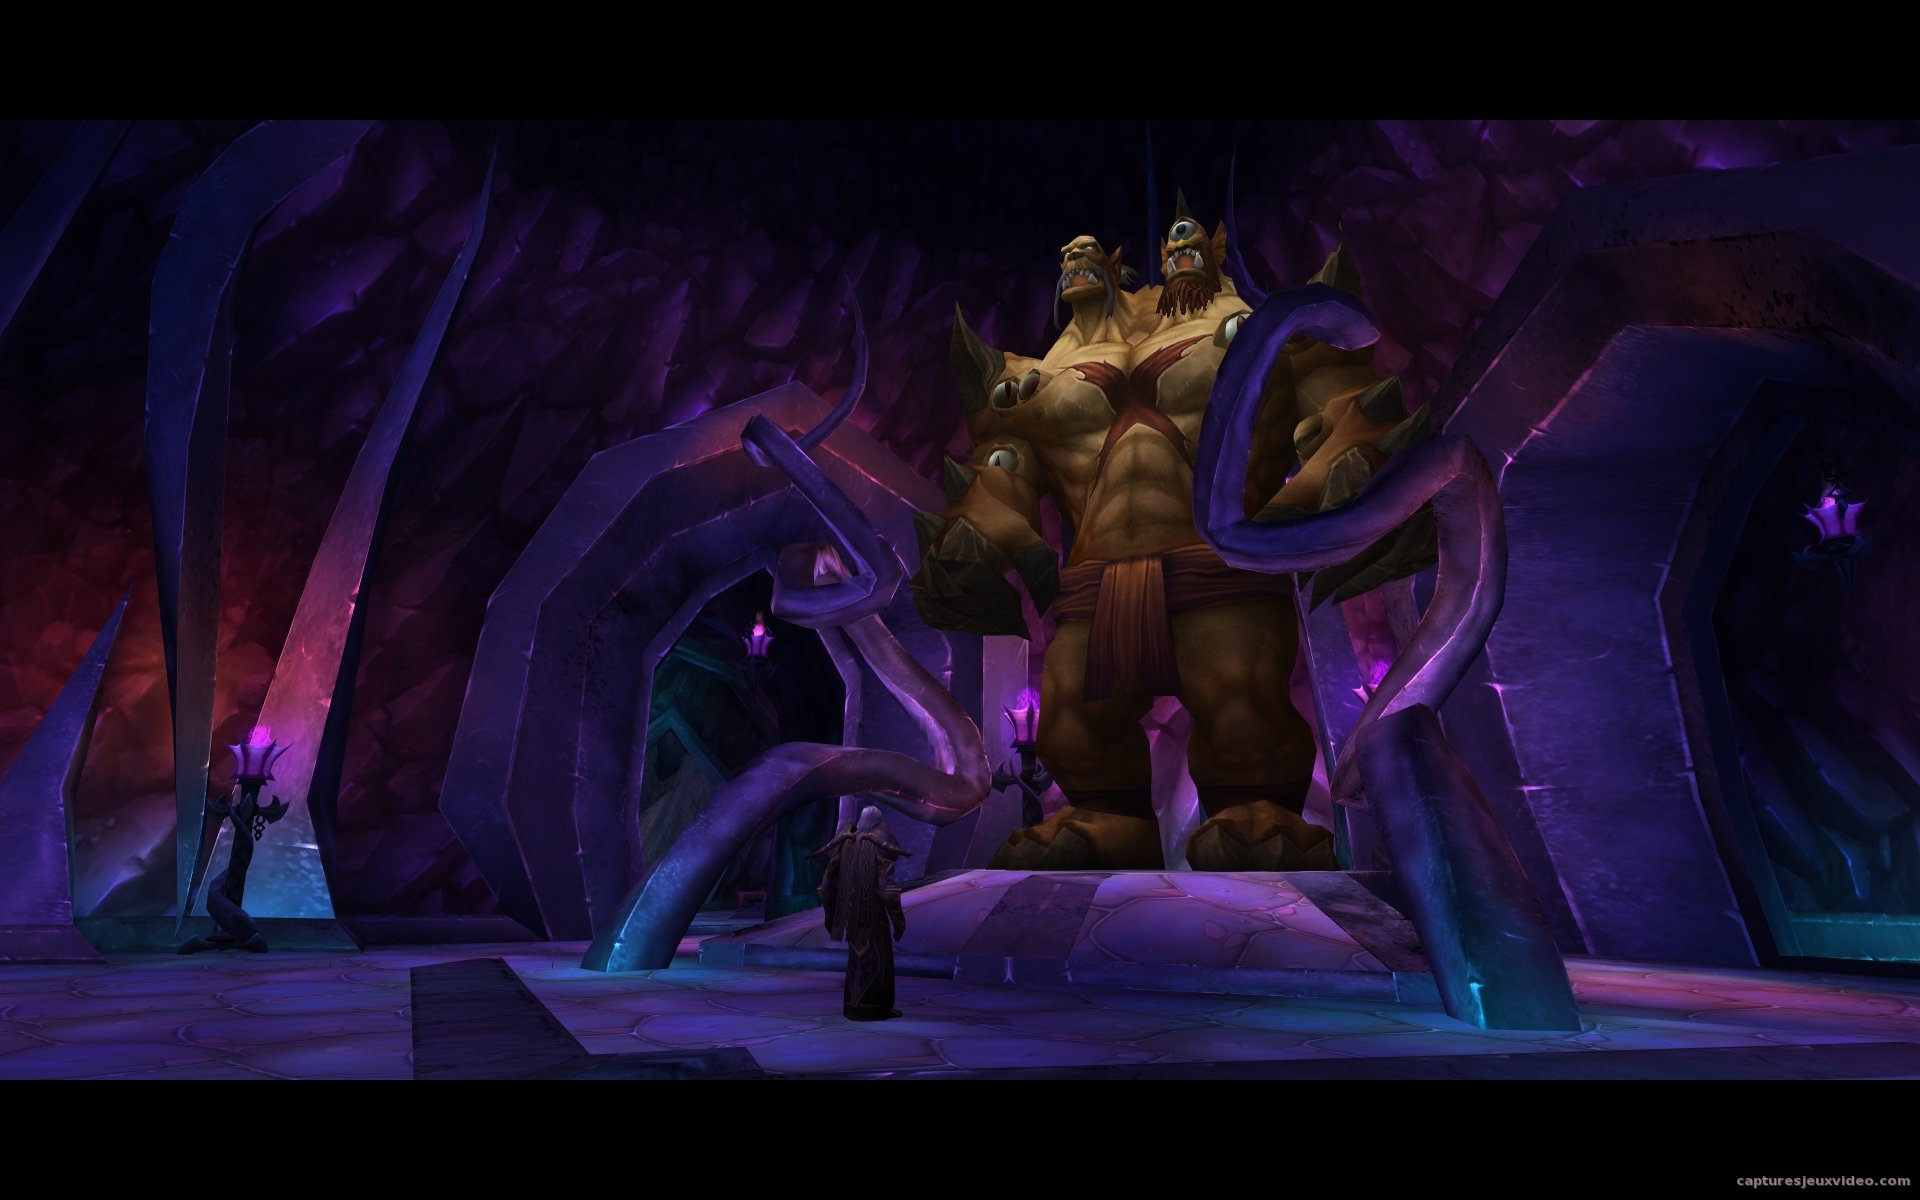 Cho'Gall boss, World of warcraft cataclysm screenshot wallpaper 0404